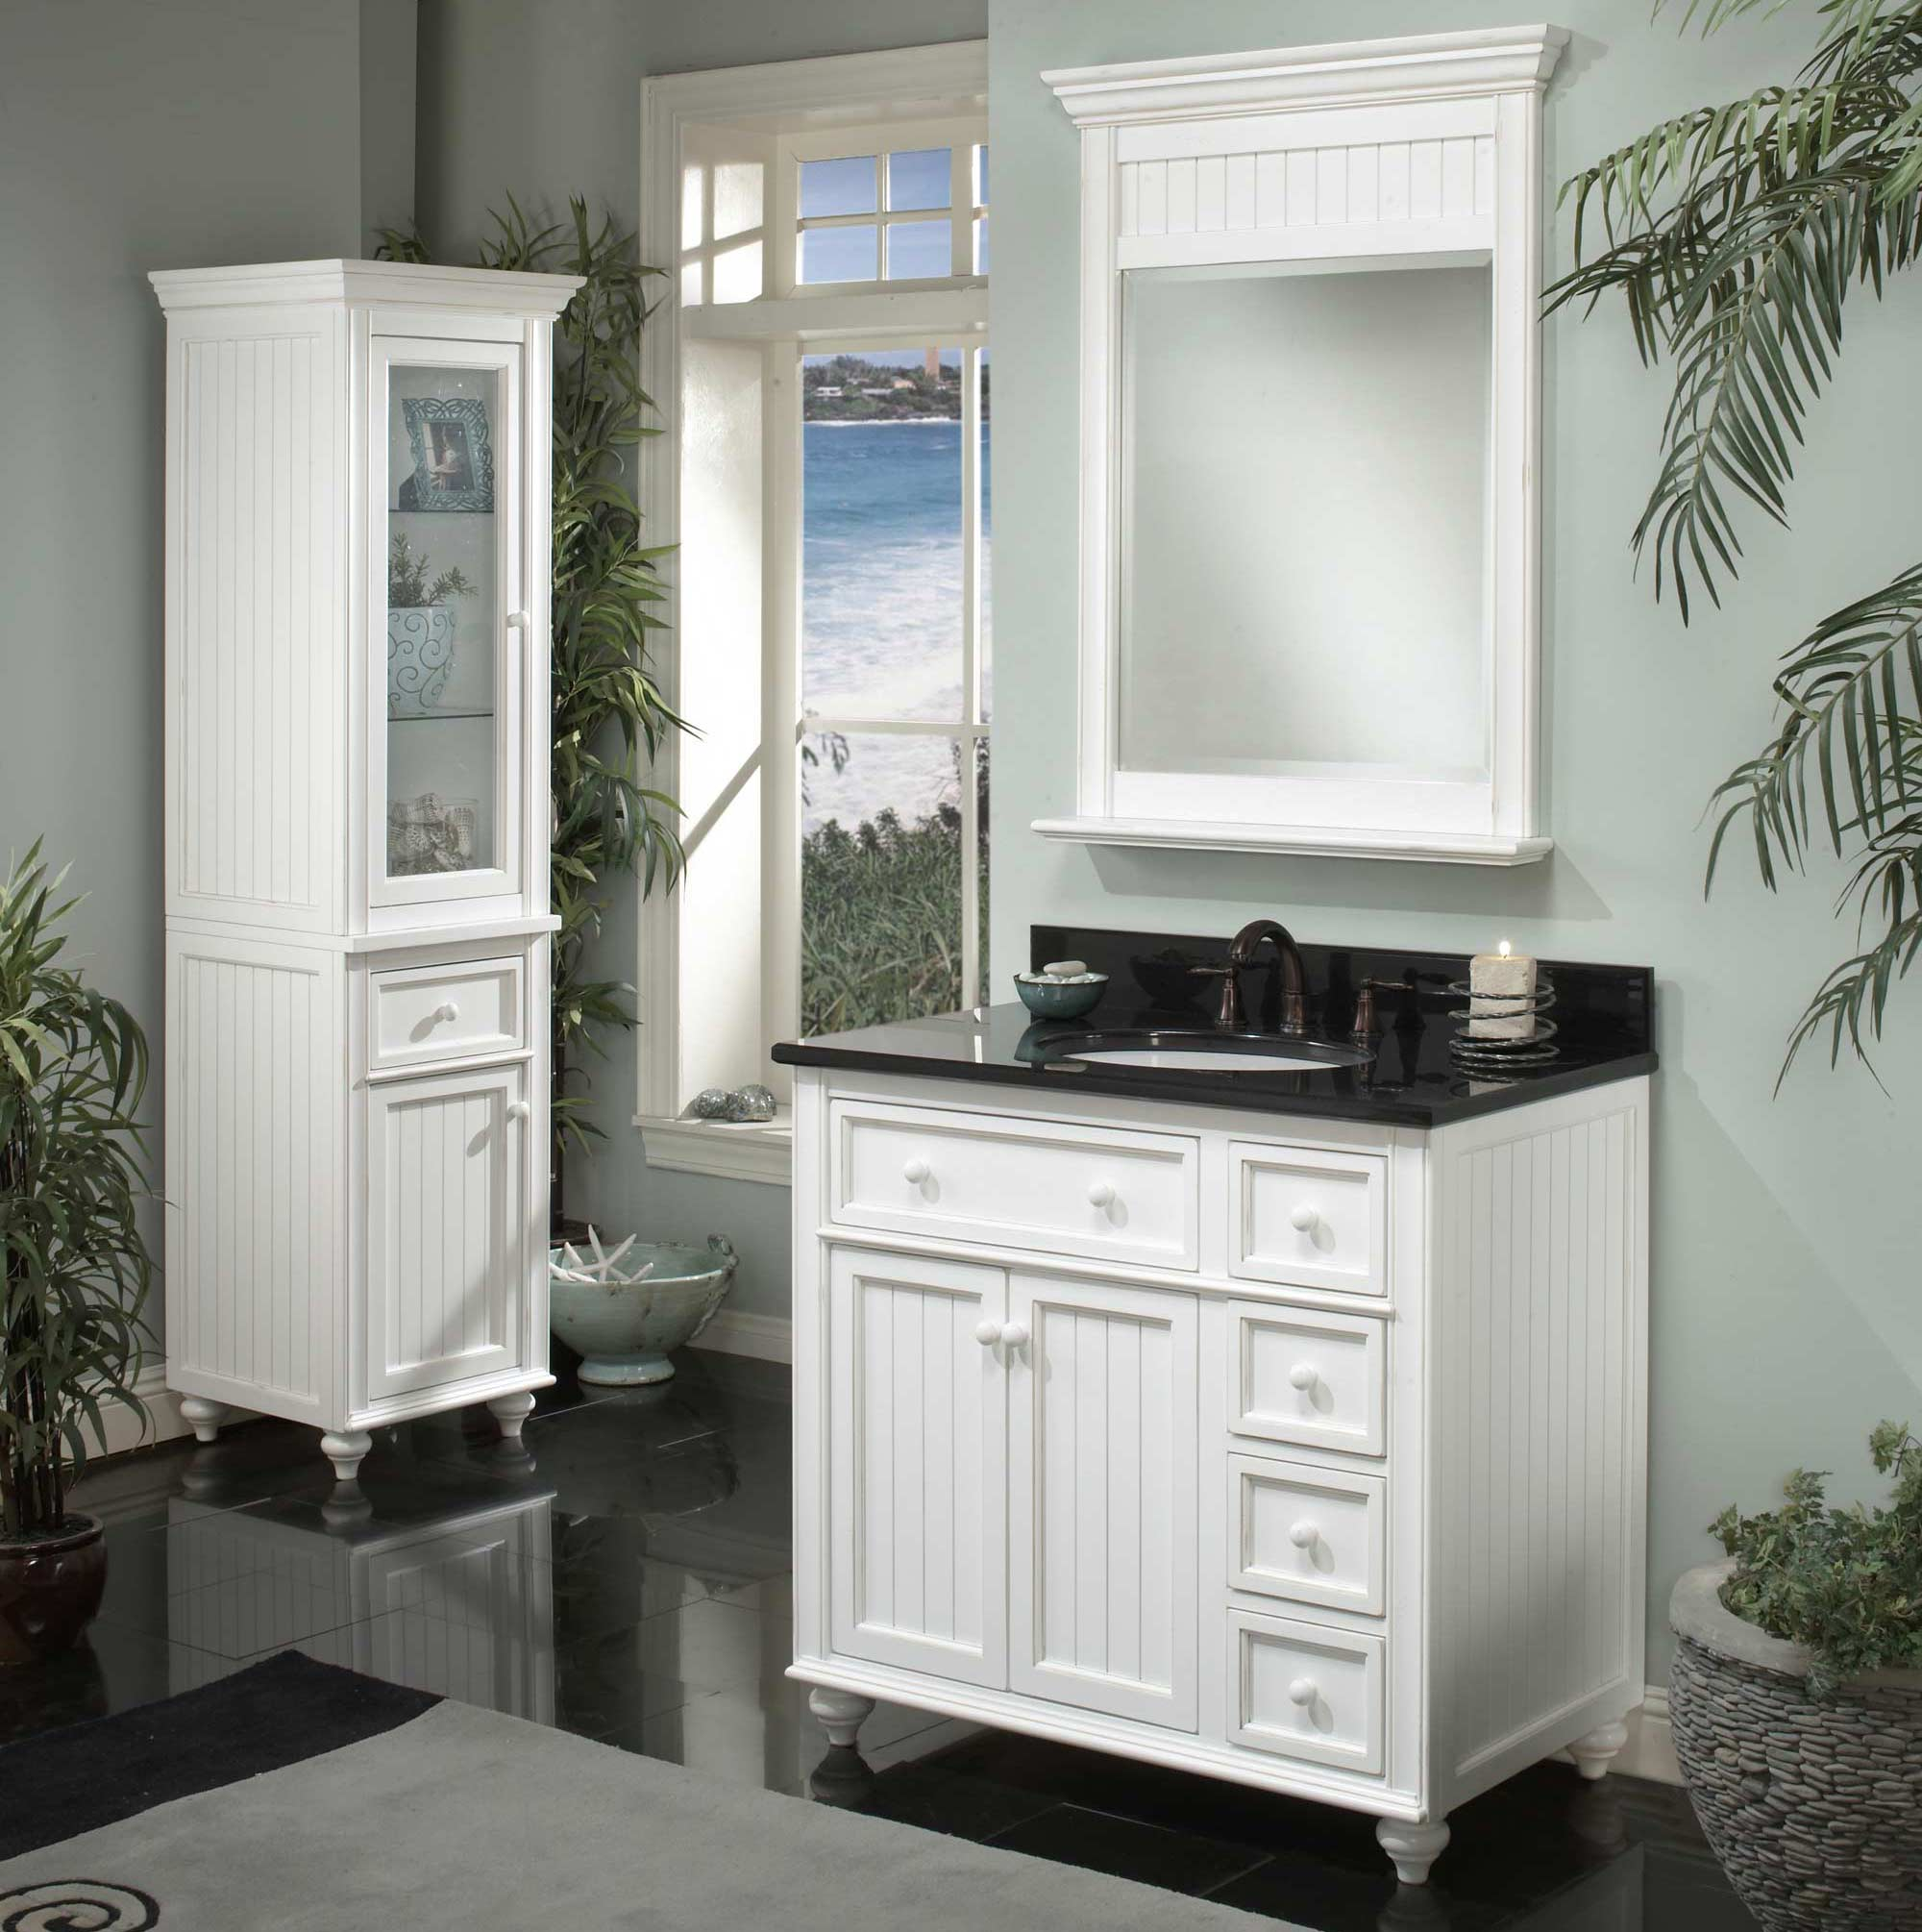 bathroom vanities by sagehill designs for a relaxing seaside cottage - Bathroom Design Ideas White Cabinets